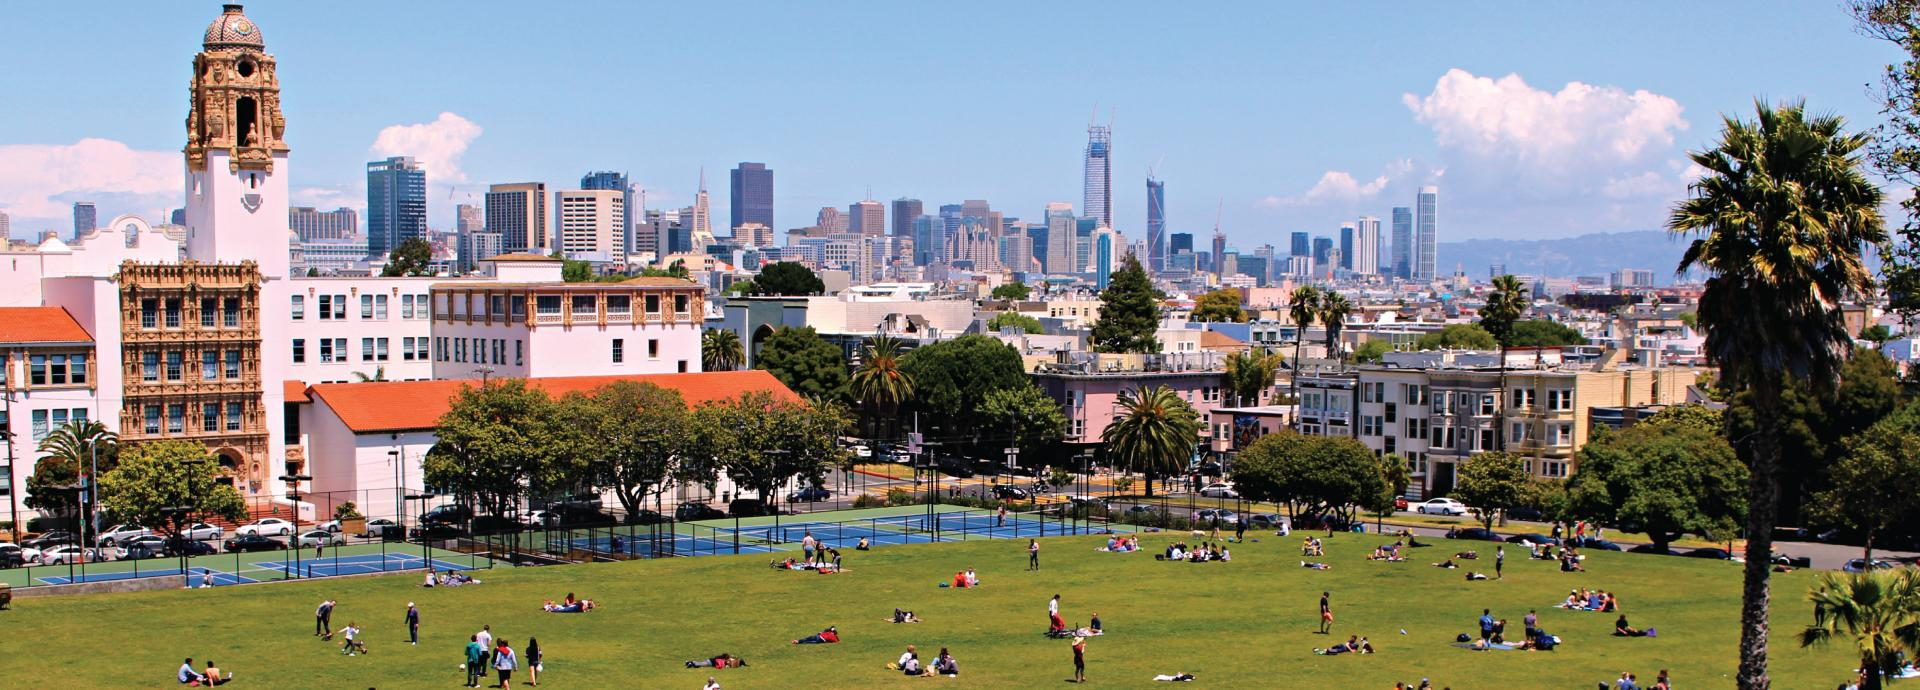 Picture taken in Mission Dolores Park, SF by Silja Pitkänen